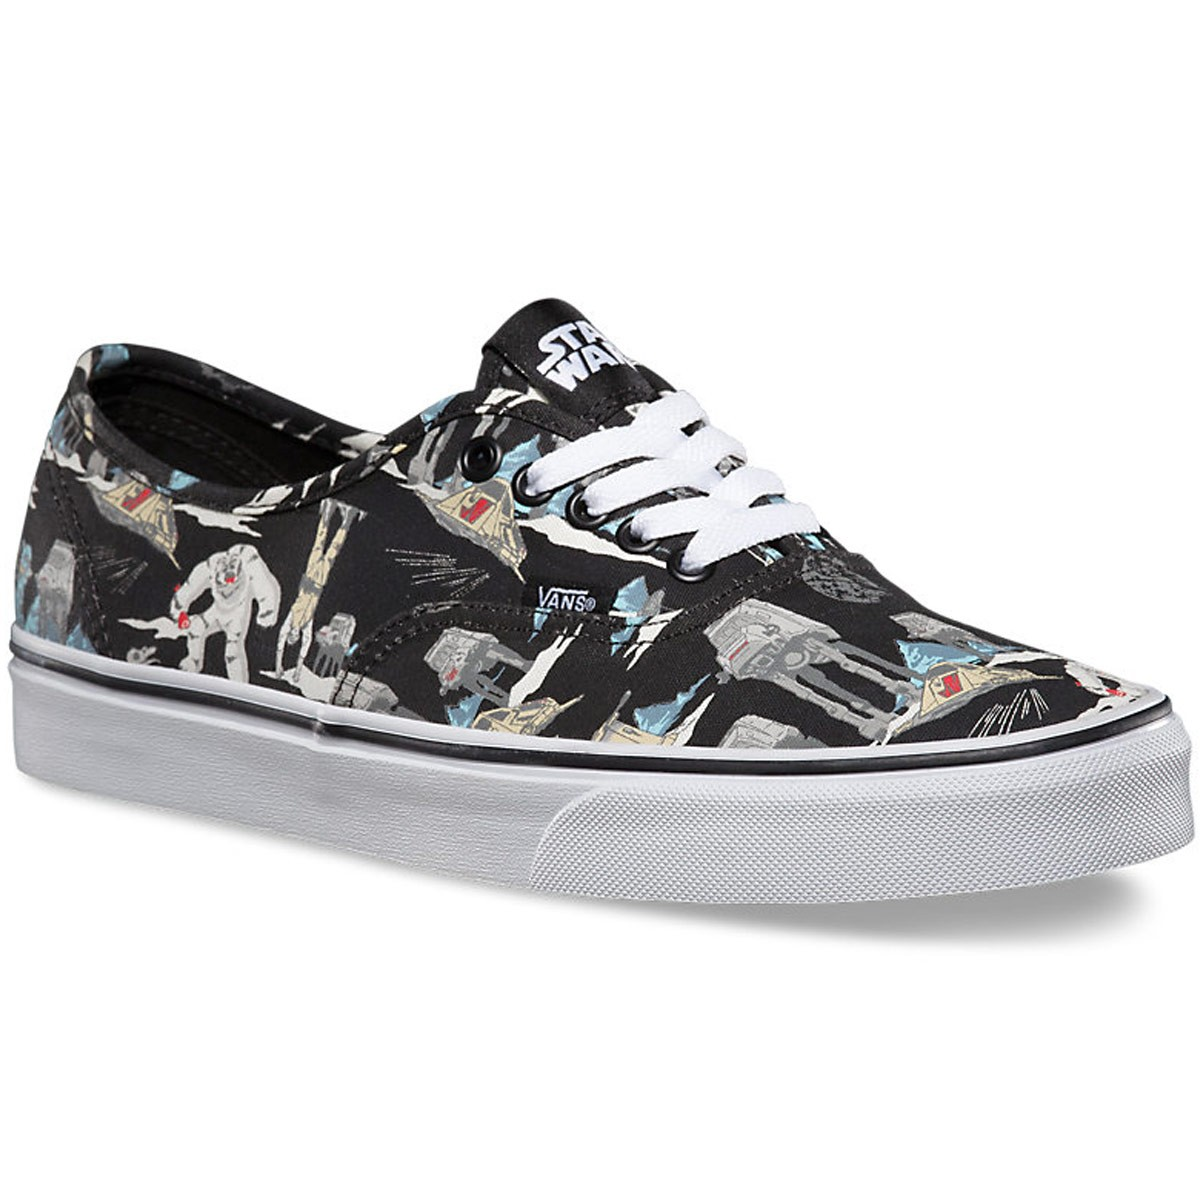 b098d65aef Vans Star Wars Authentic Shoes - Dark Side Planet Hoth - 7.0